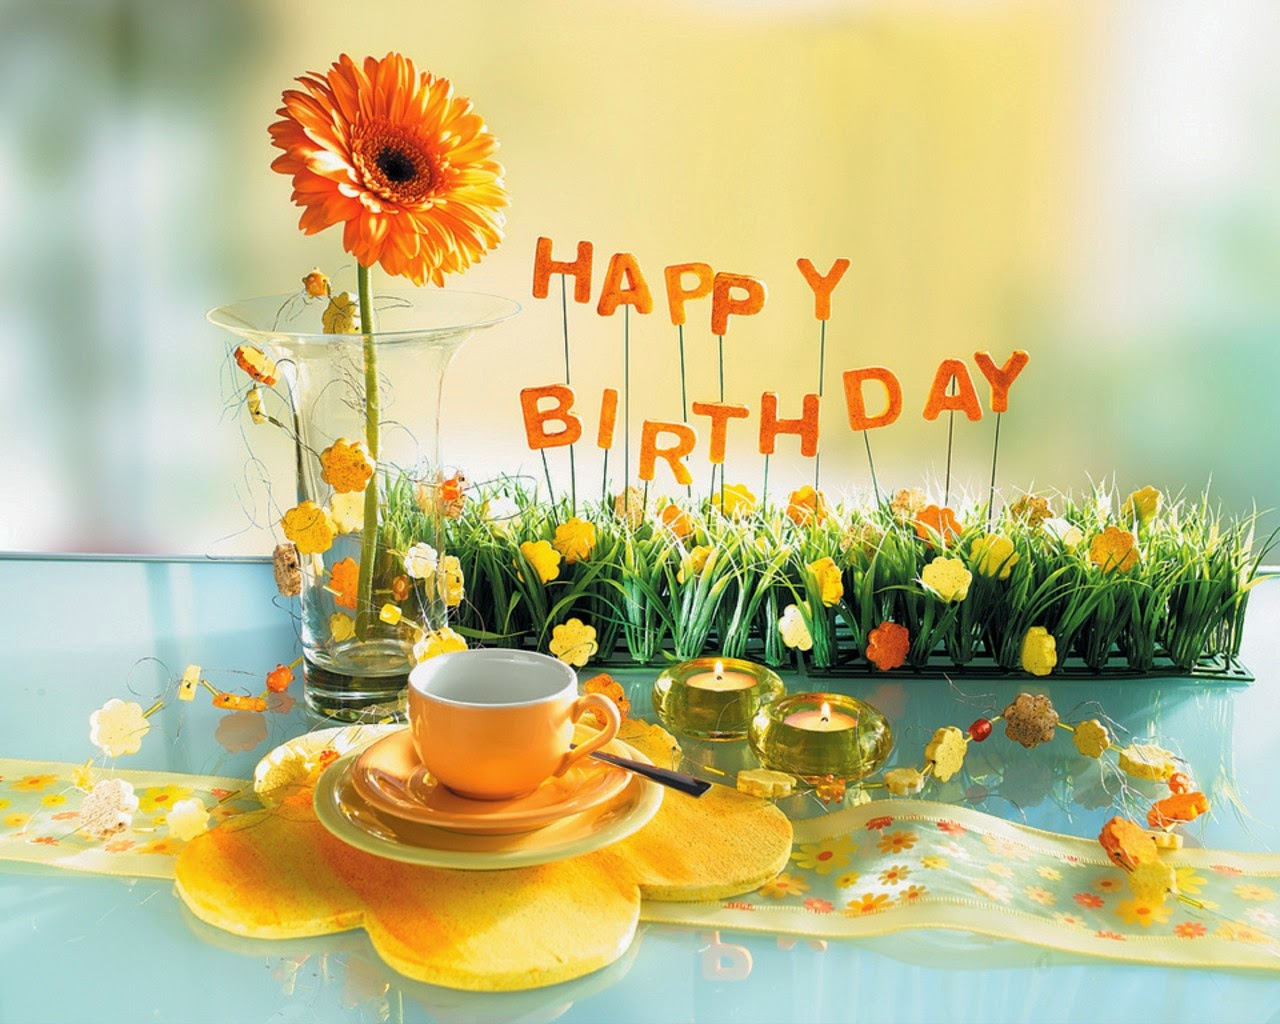 Happy Birthday hd nice photo free download